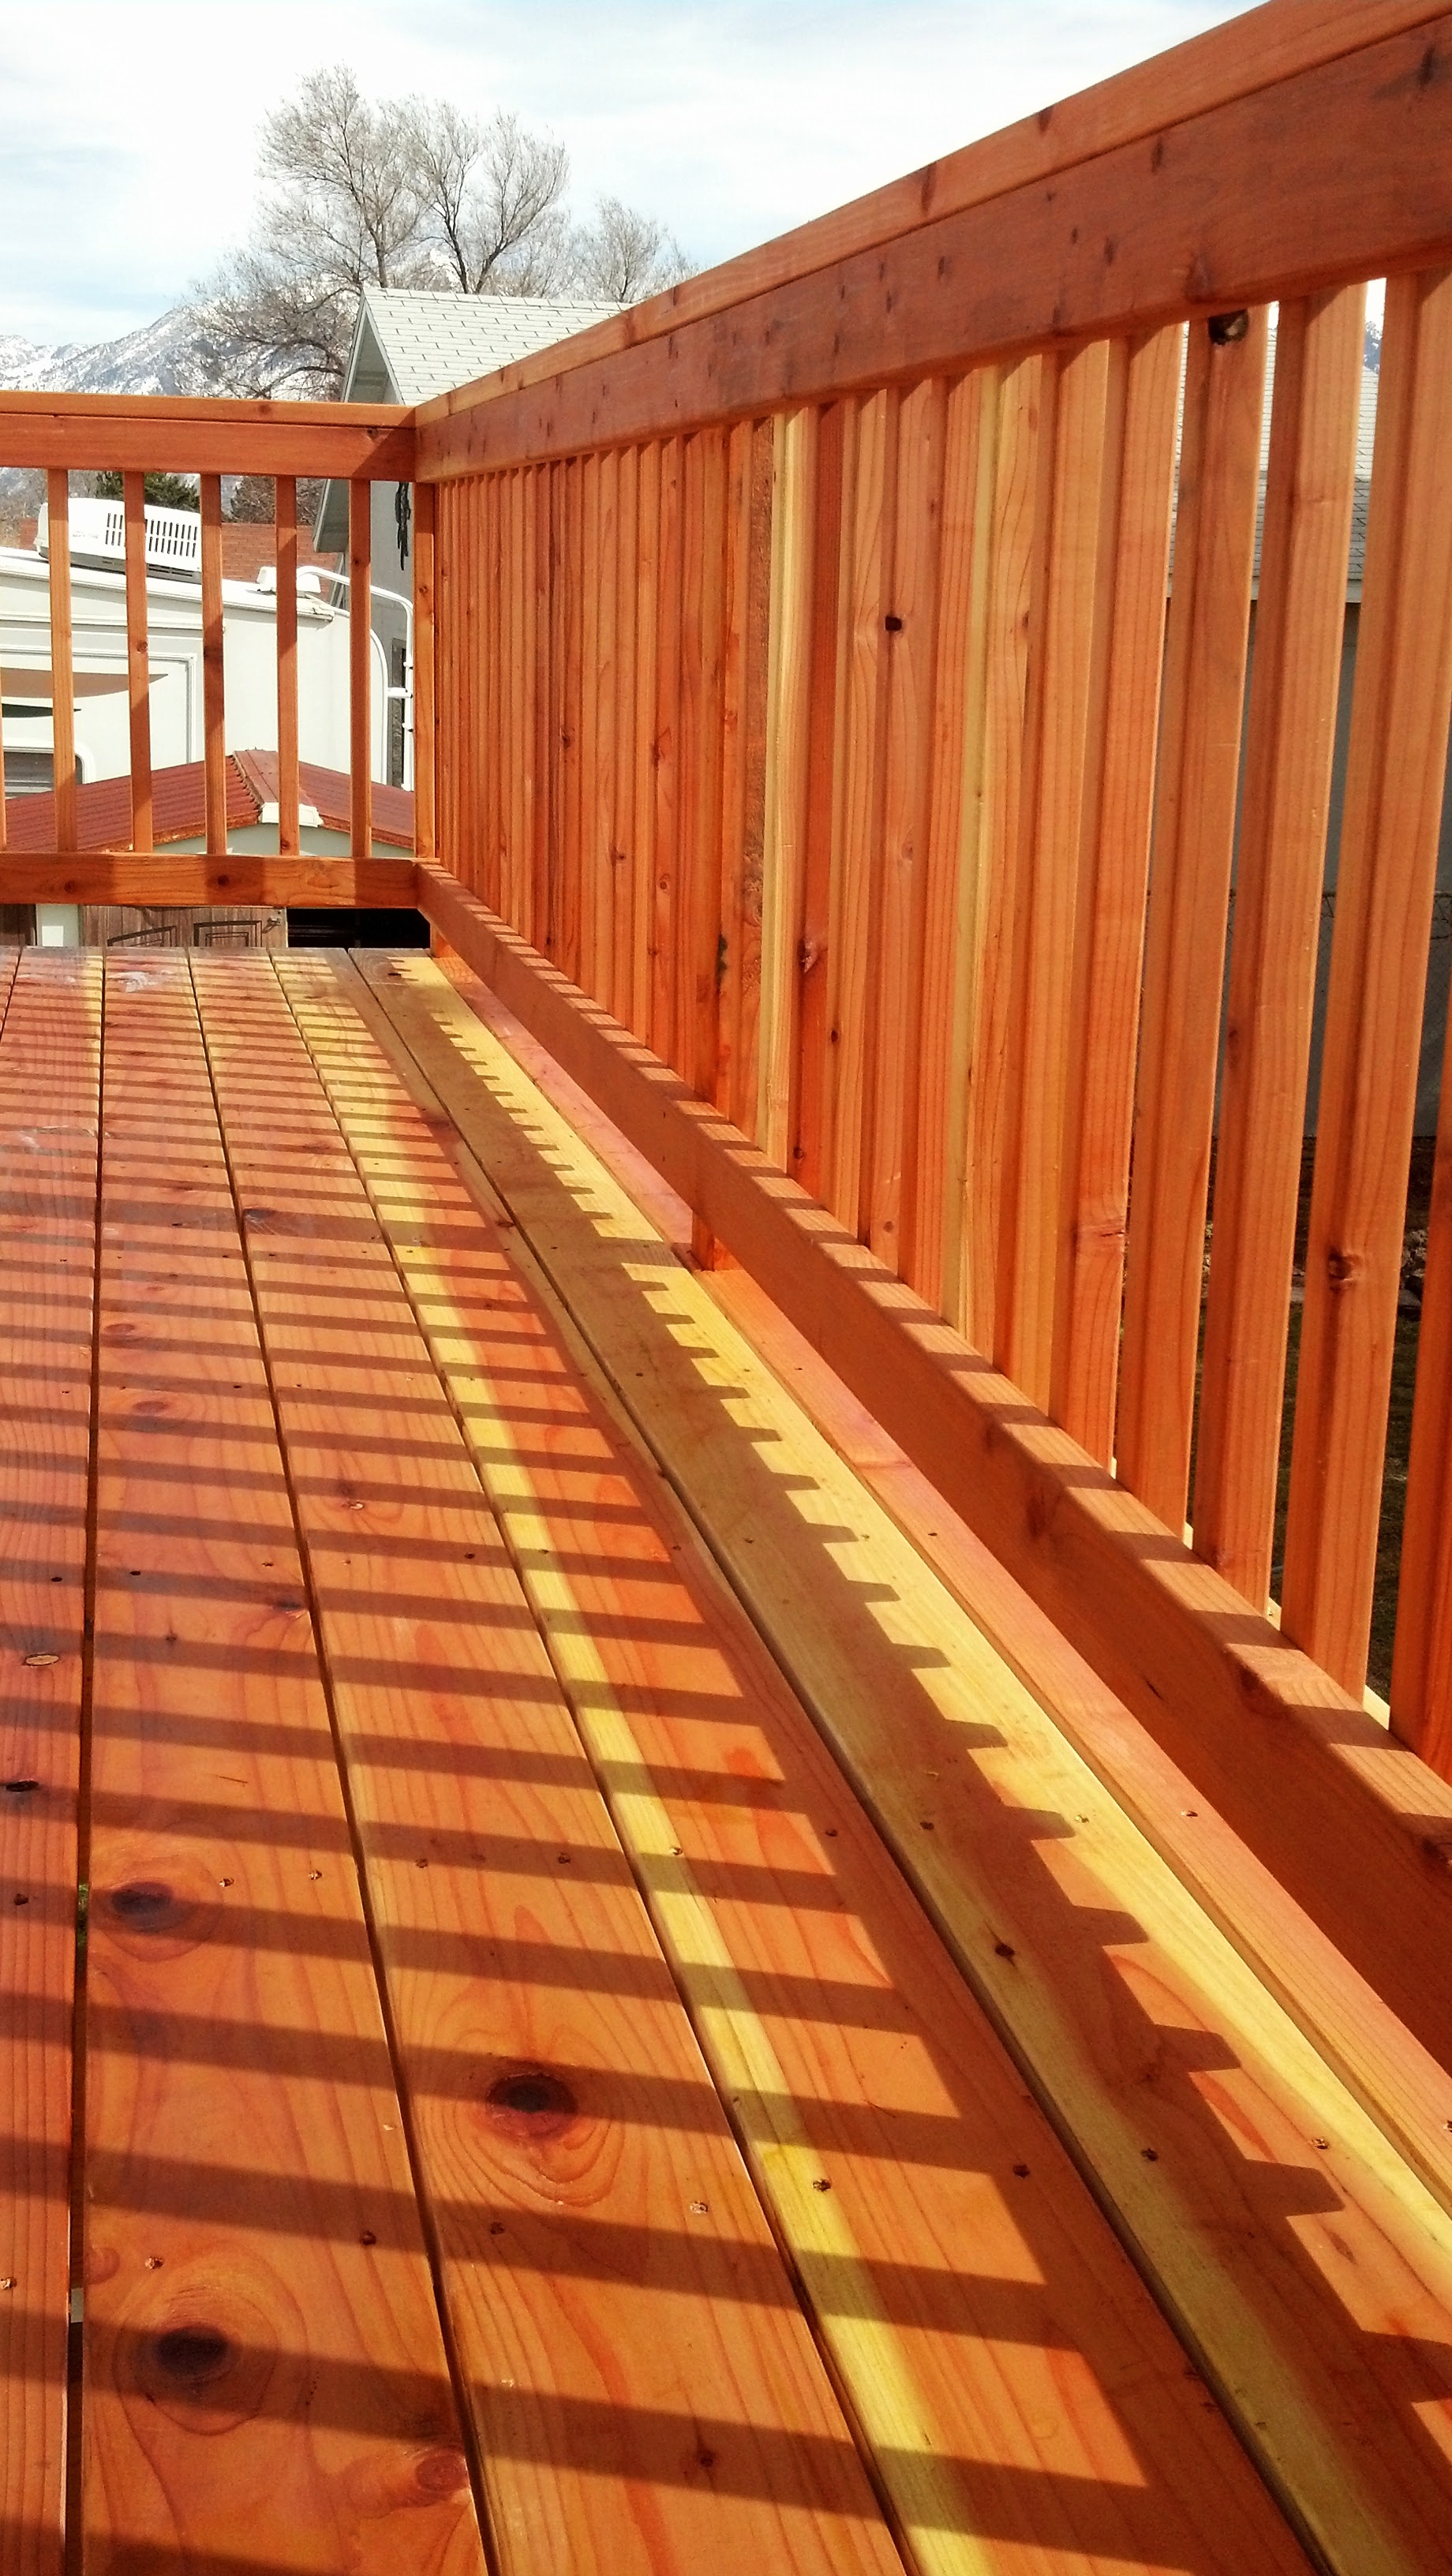 Redwood decking and handrail